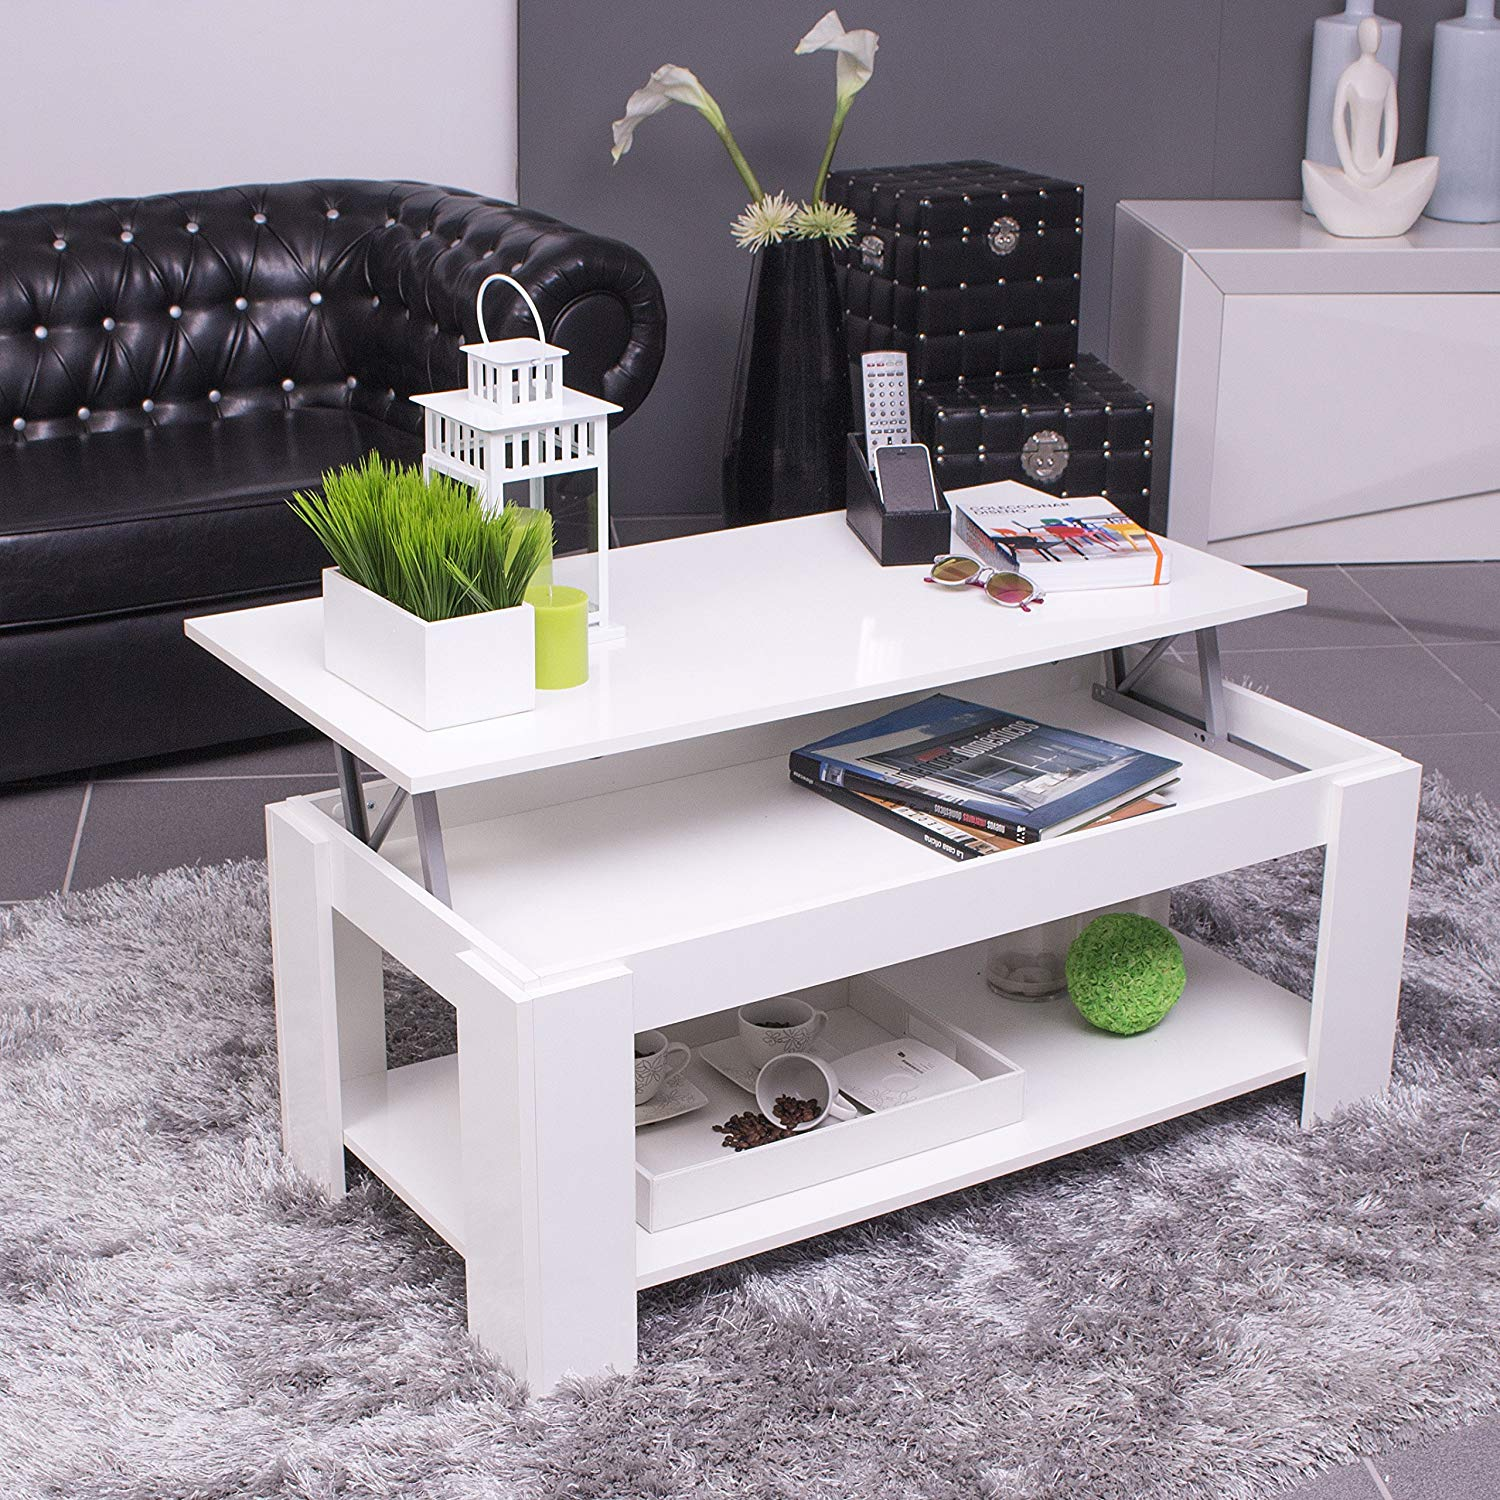 White Lift Up Coffee Table.Ambit Lift Up Storage Coffee Table With Shelf In White